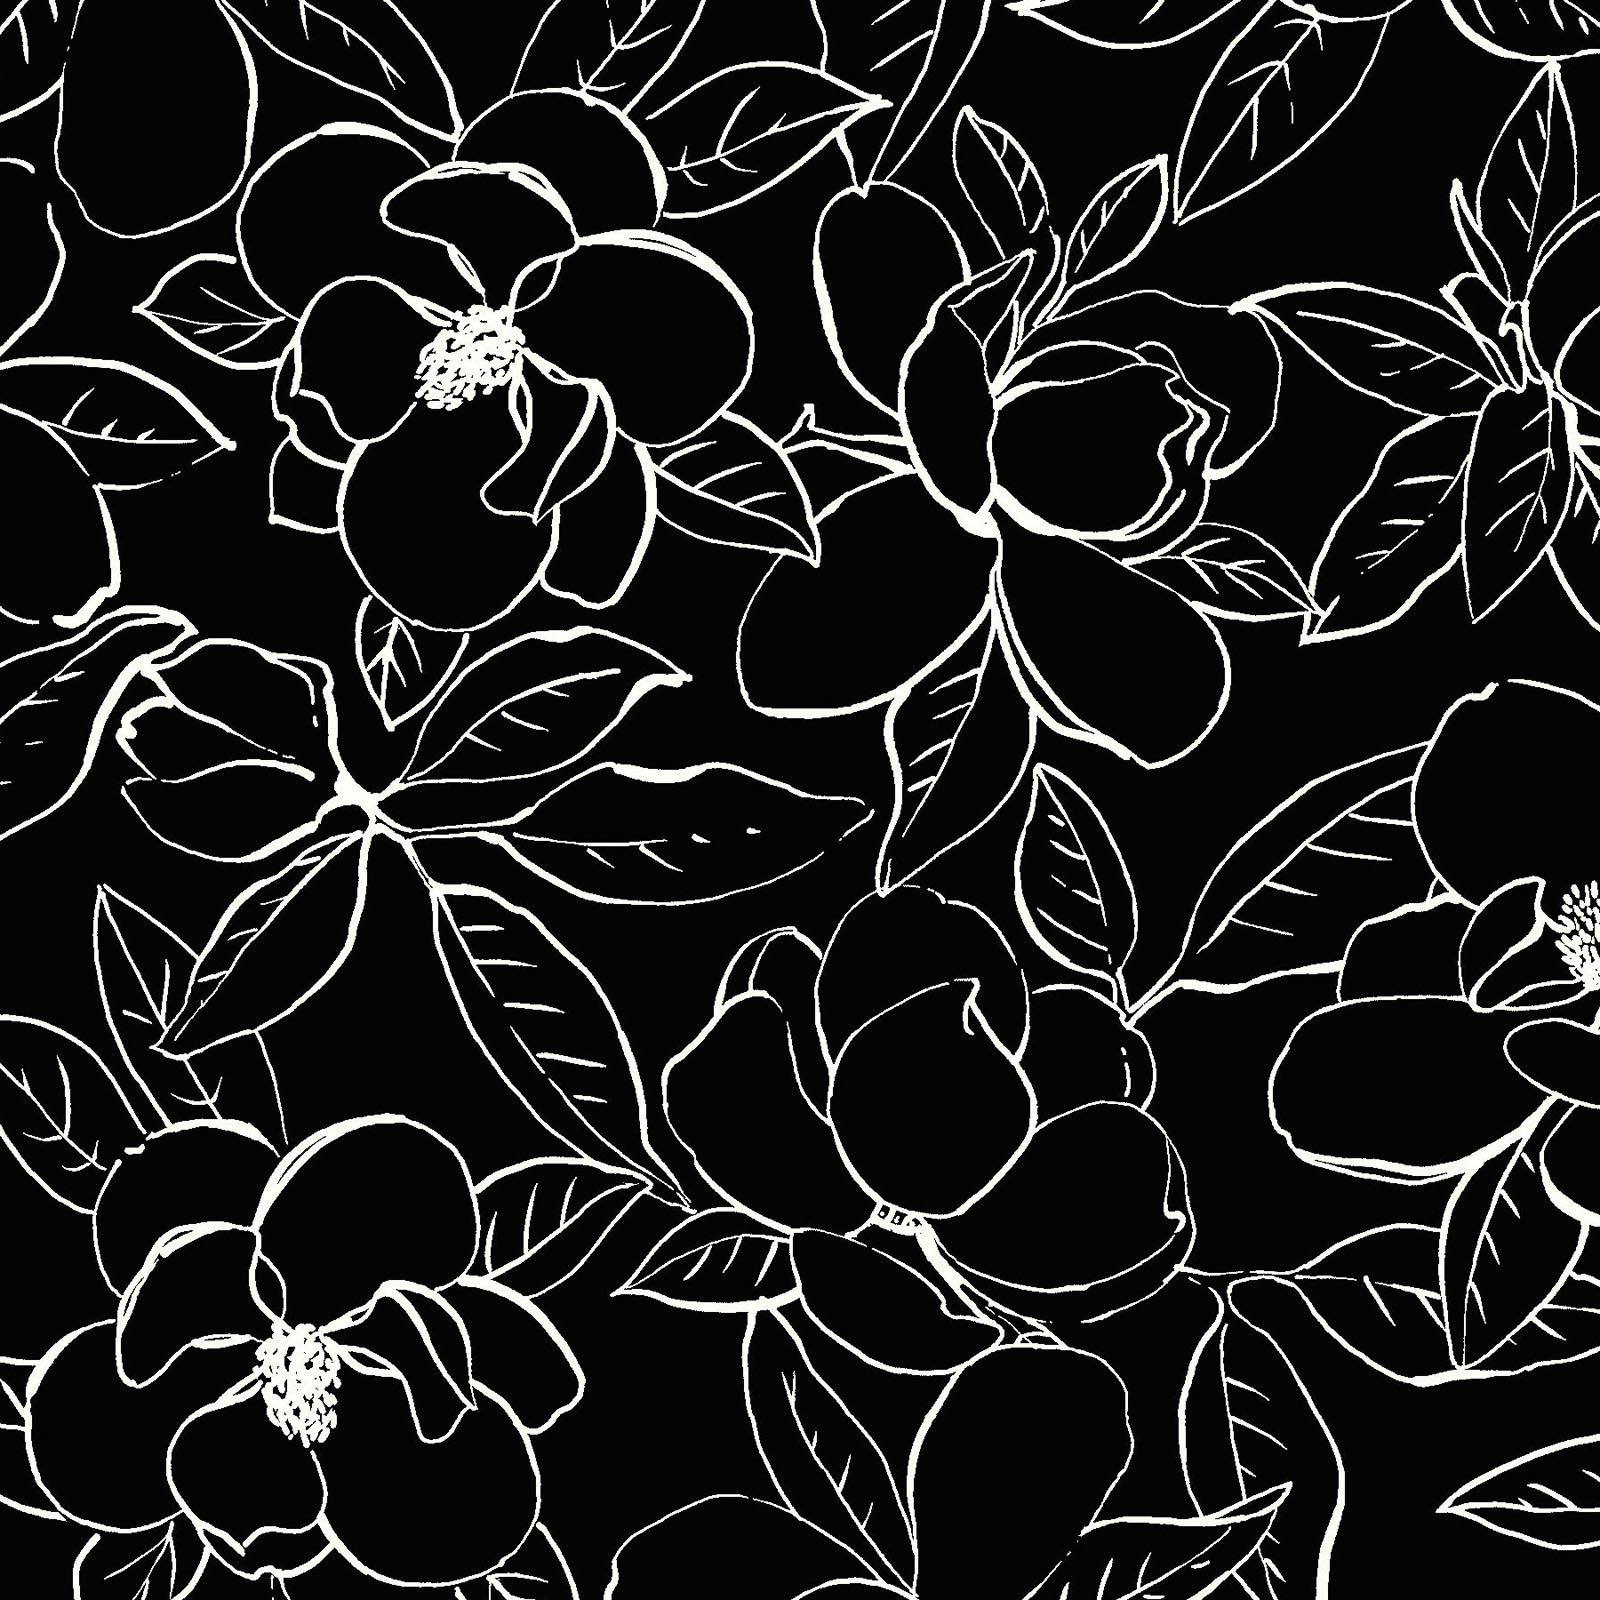 MAGN-4253 KW - MAGNOLIAS BY SANDY CLOUGH OUTLINES BLK/WHI